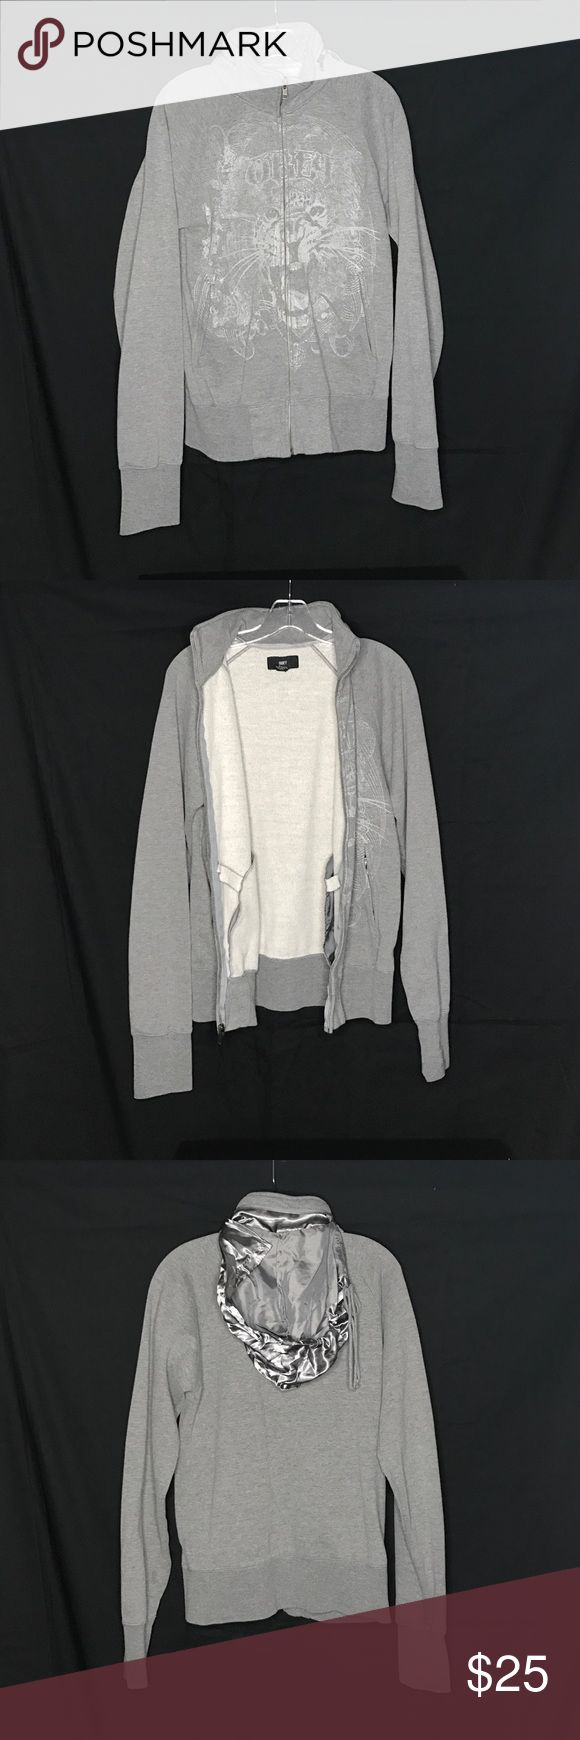 Obey Tiger Face Grey Zip Up Hoodie Sweater sz. S Used condition with plenty of wear left Zip Up Hoodie with a pouch for the hood No rips or stains Obey Sweaters Zip Up